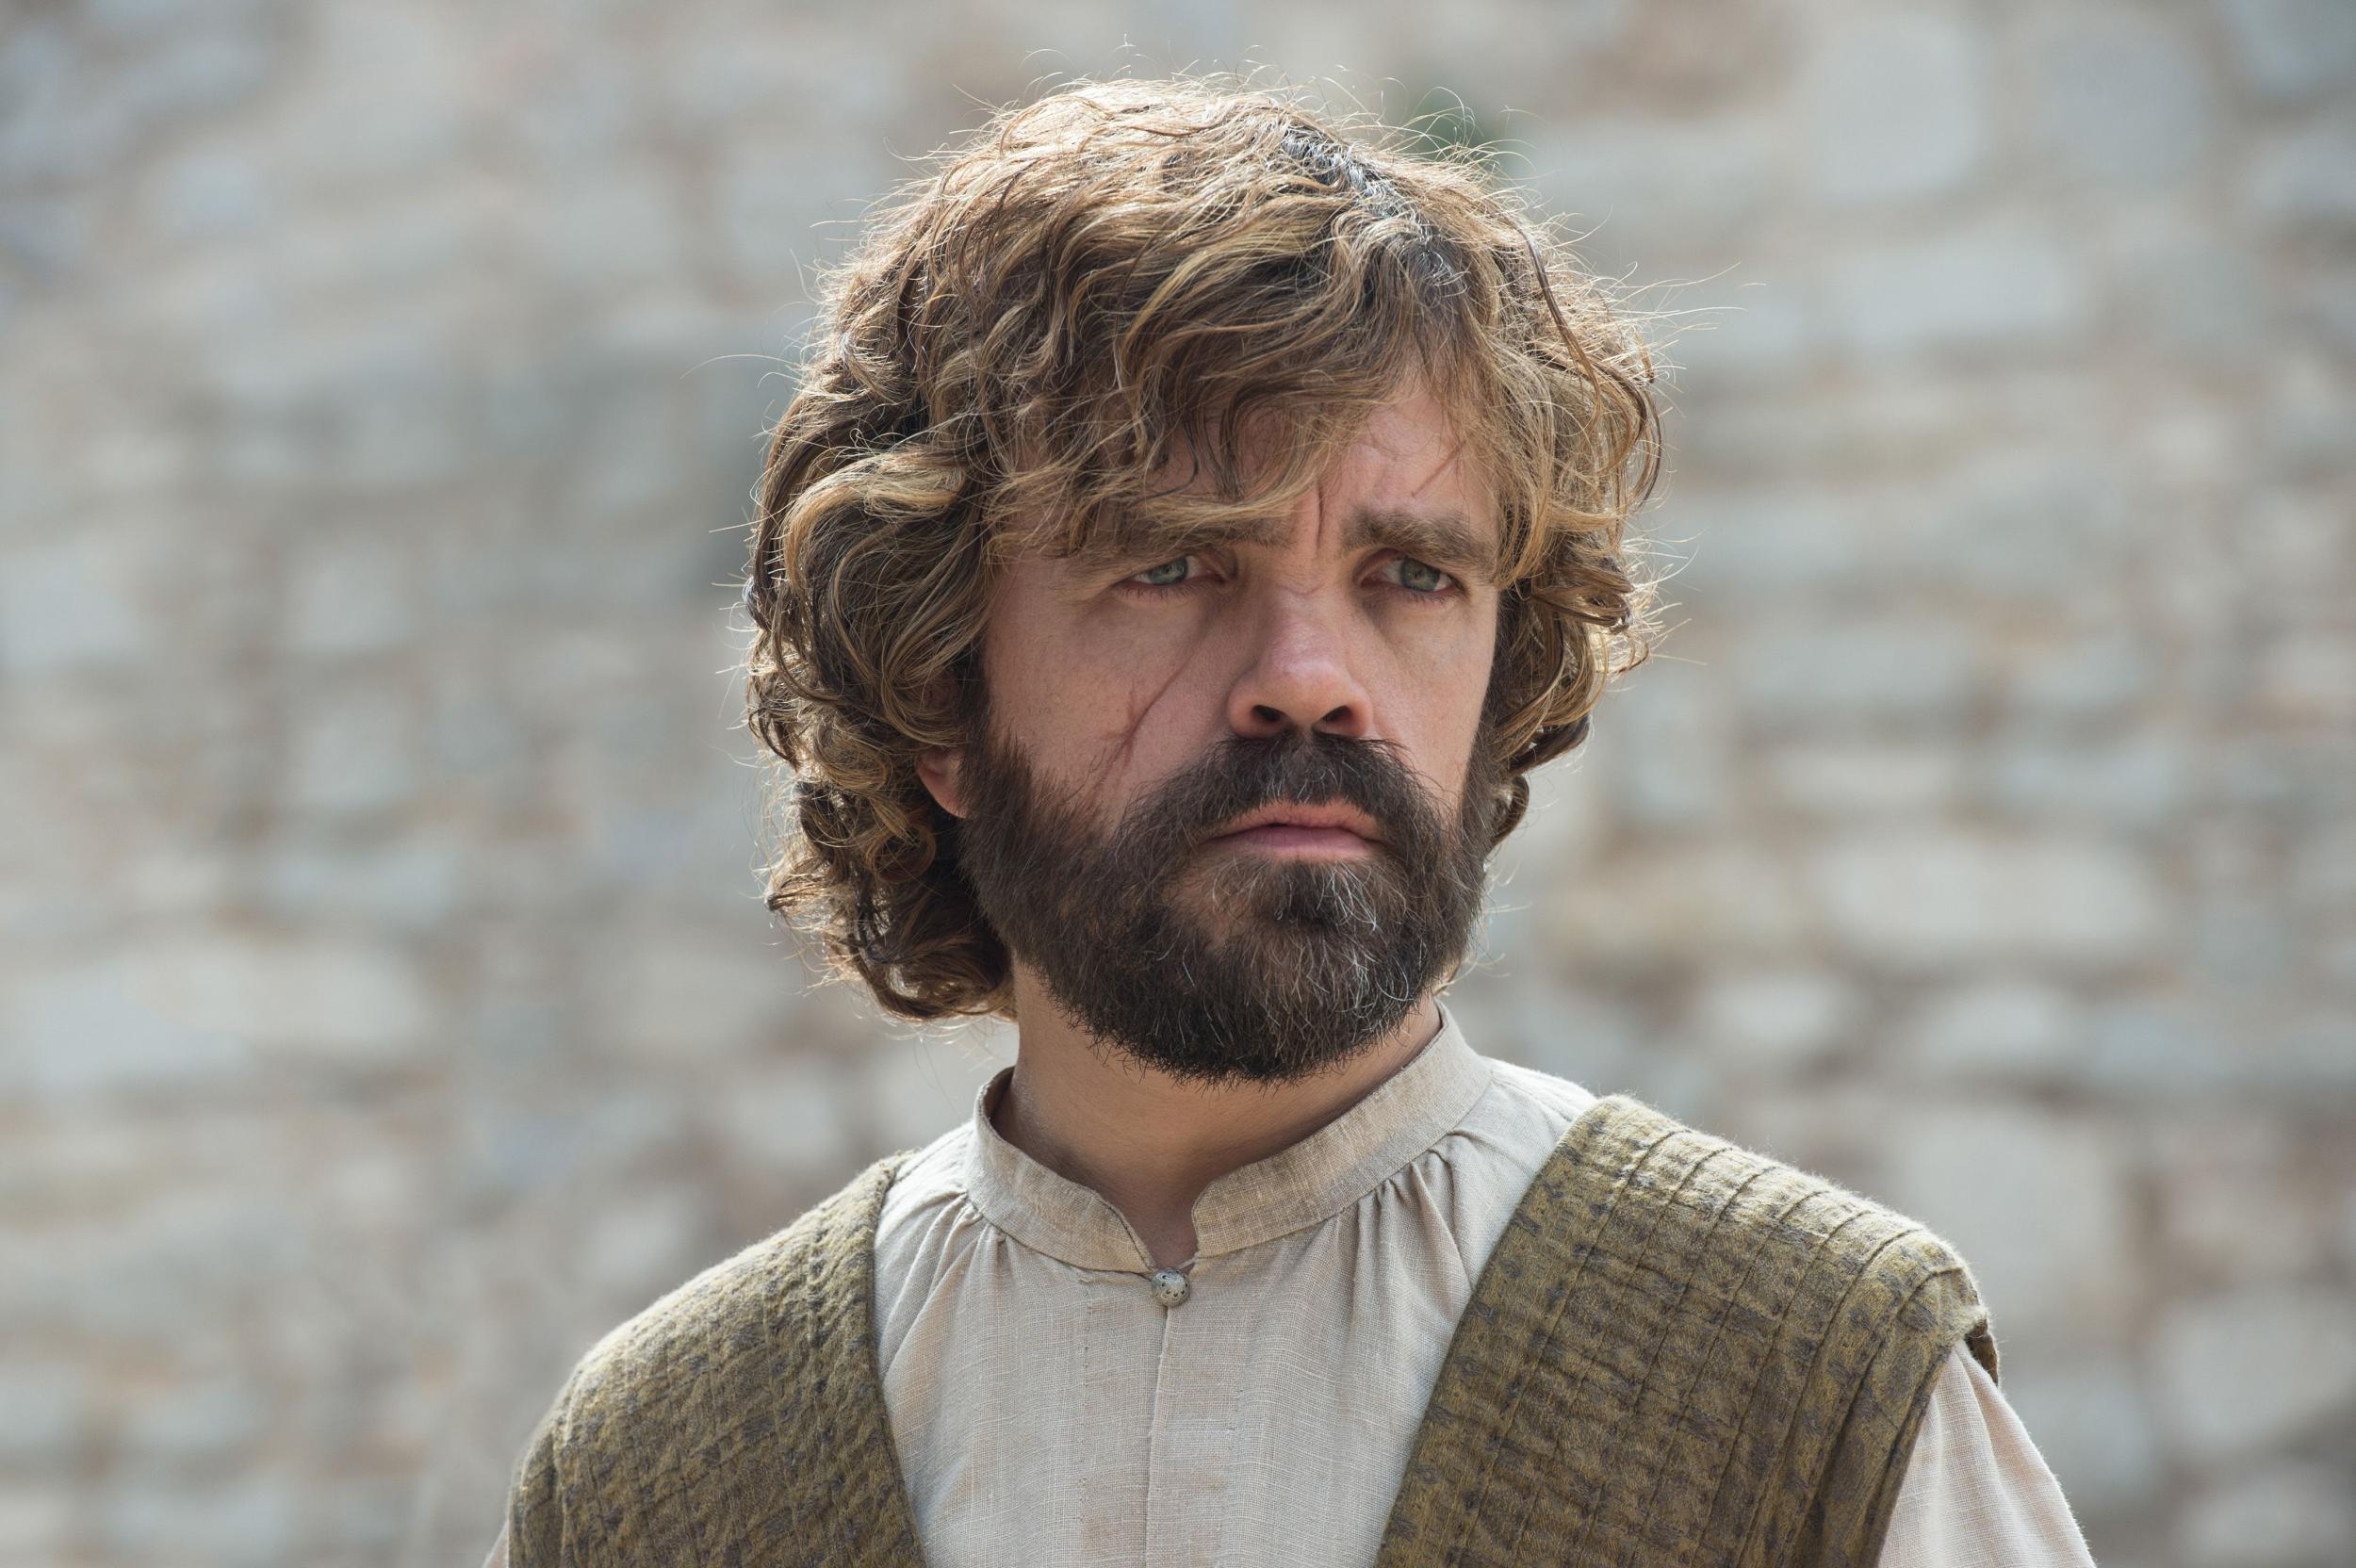 2. Tyrion Lannister